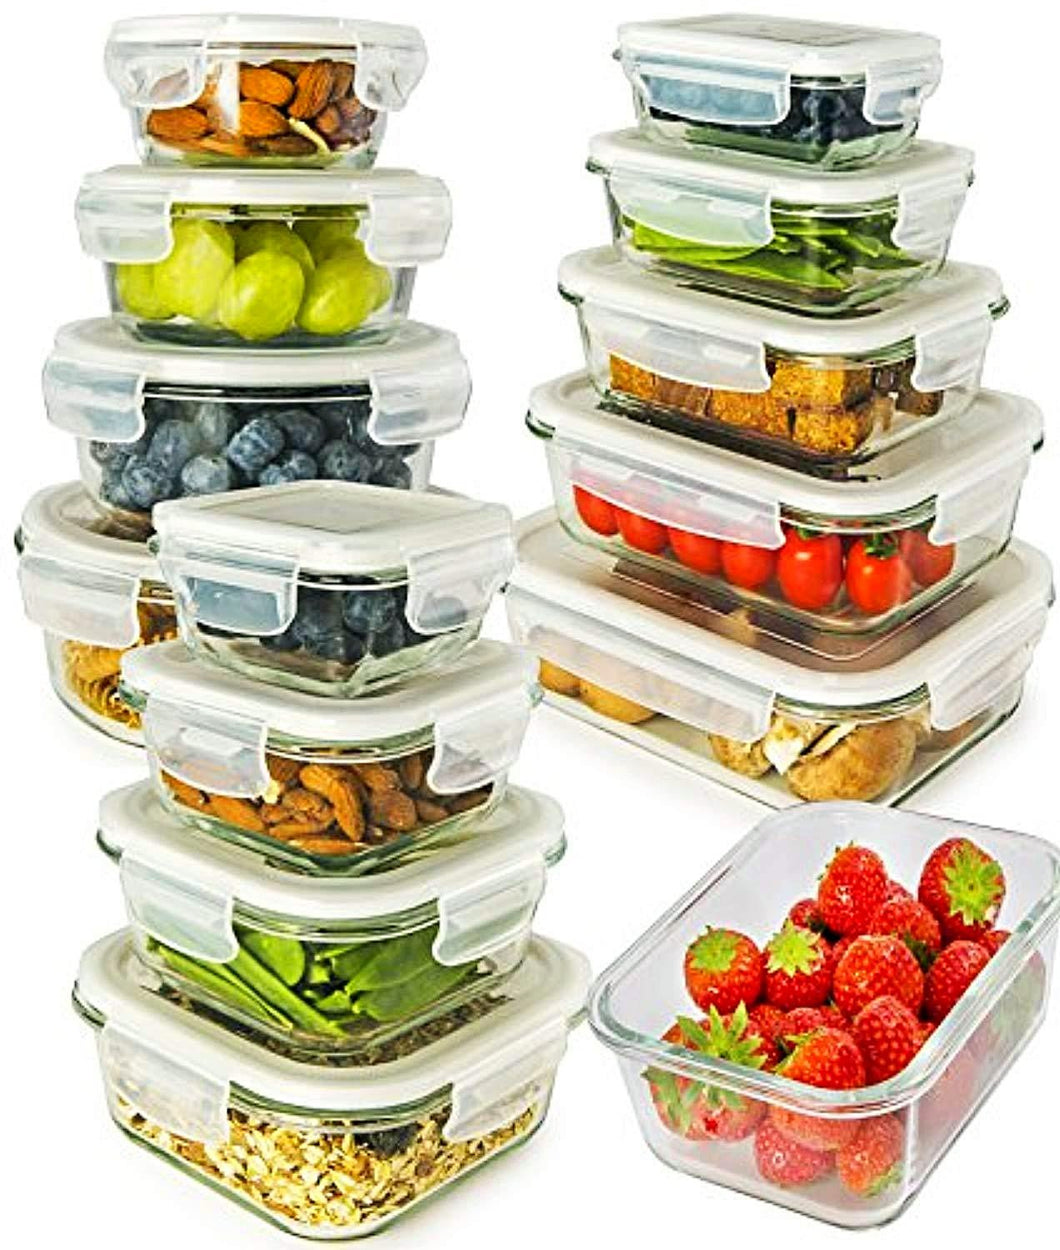 13-Pack Glass Containers with Lids